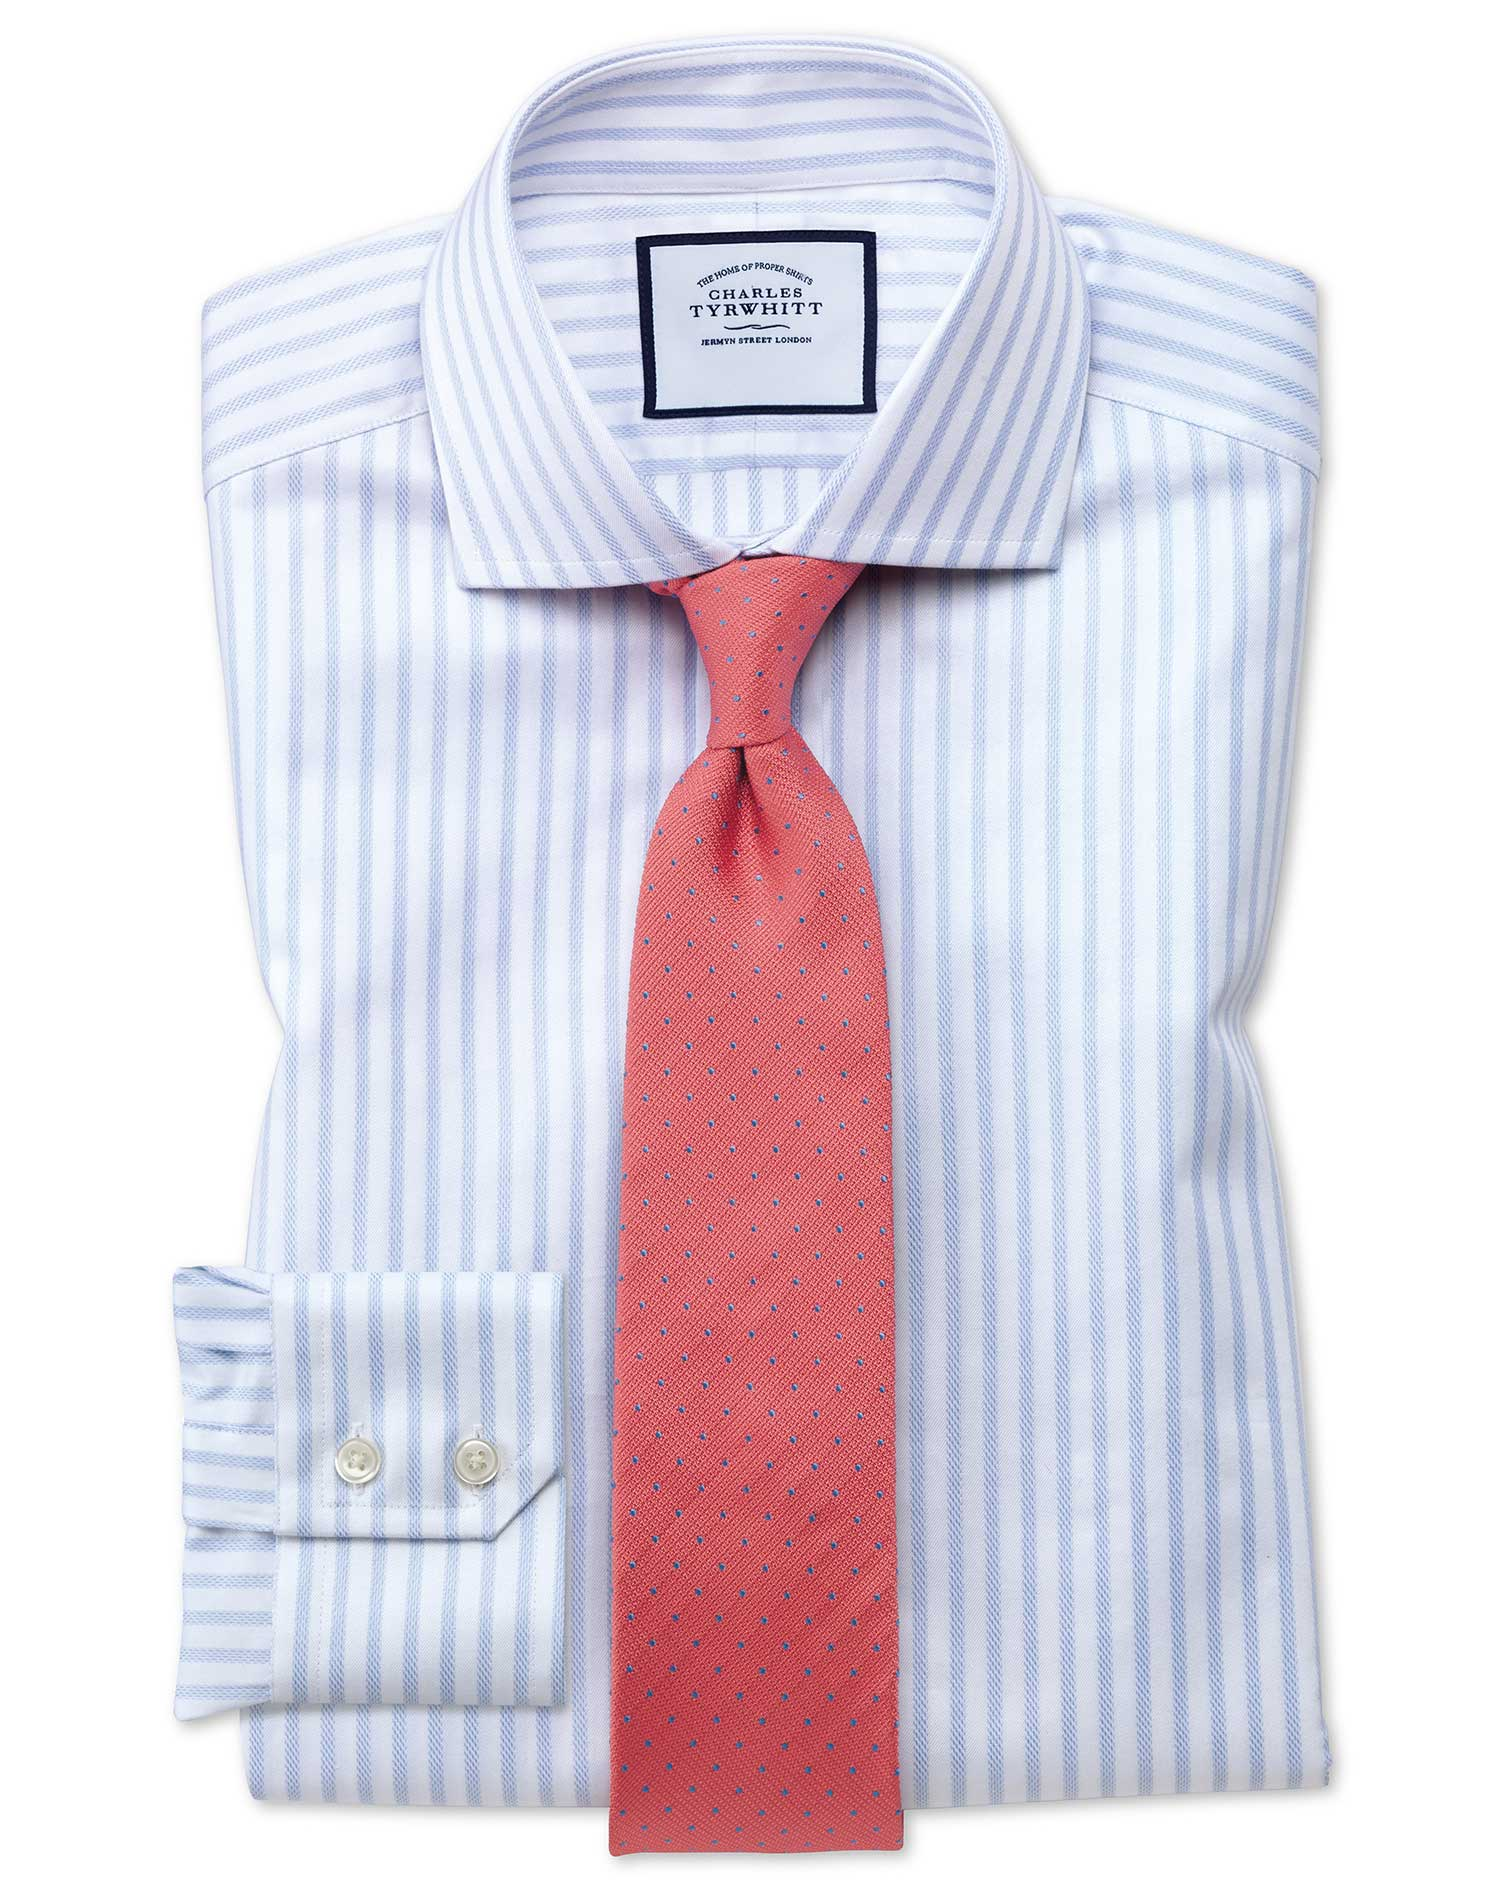 Extra Slim Fit Cutaway Textured Stripe Blue and White Cotton Formal Shirt Single Cuff Size 16.5/33 b